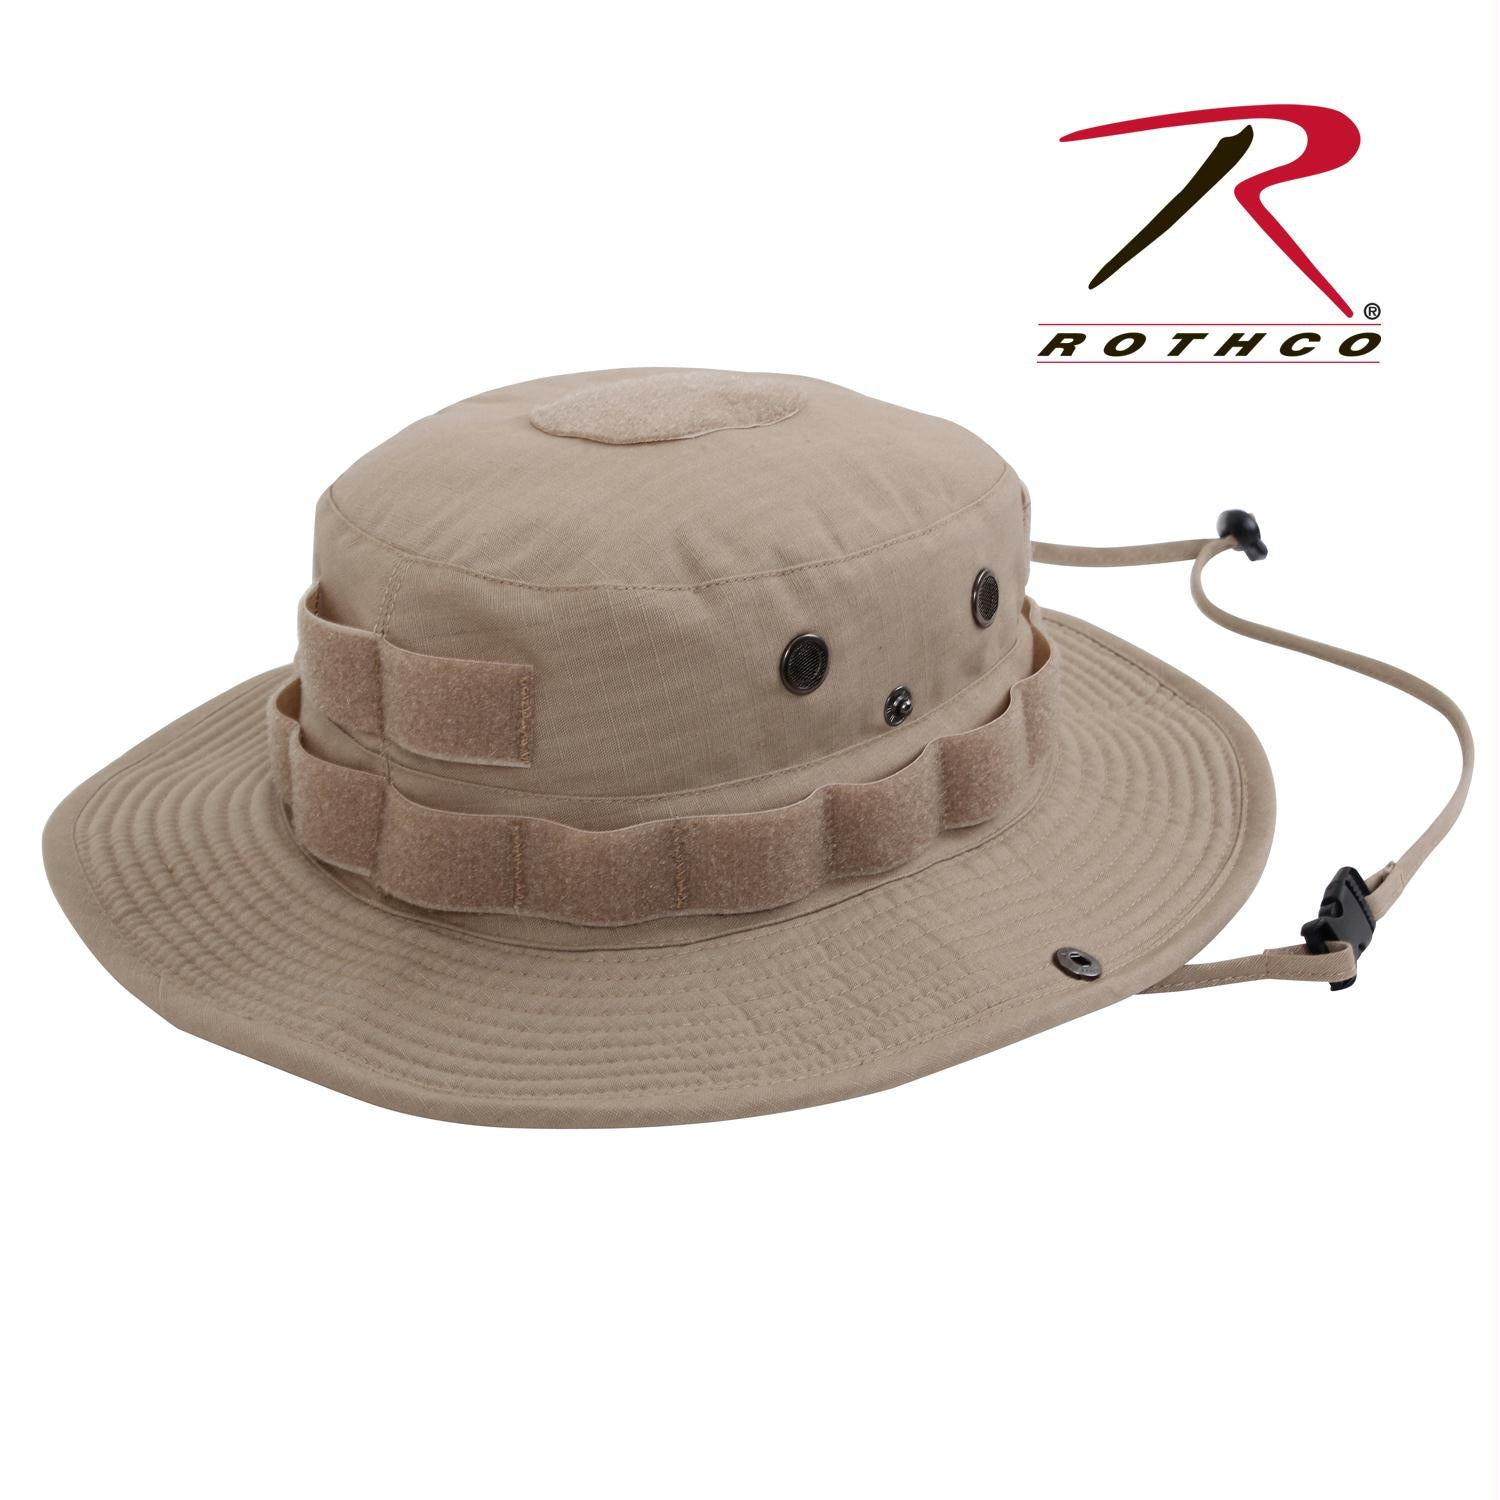 Rothco Tactical Boonie Hat - Tan / 7 3/4